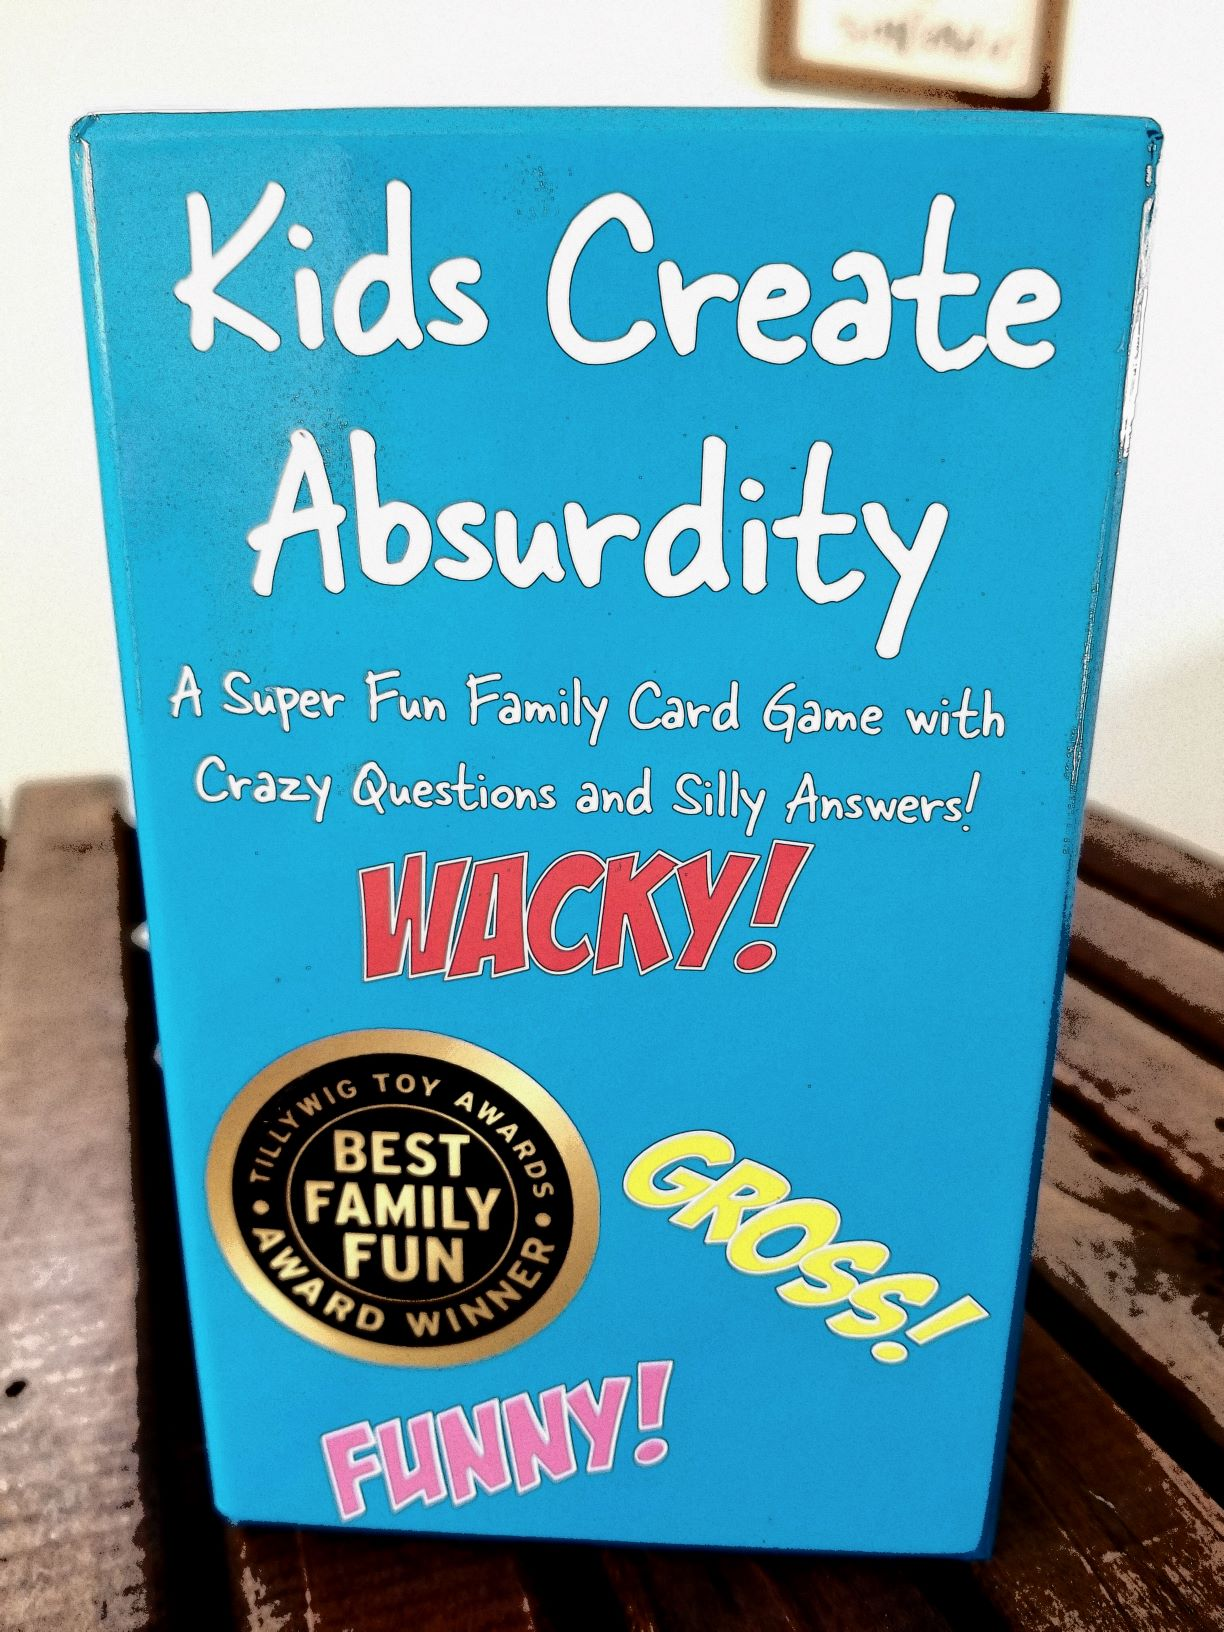 Kids Create Absurdity Game Review